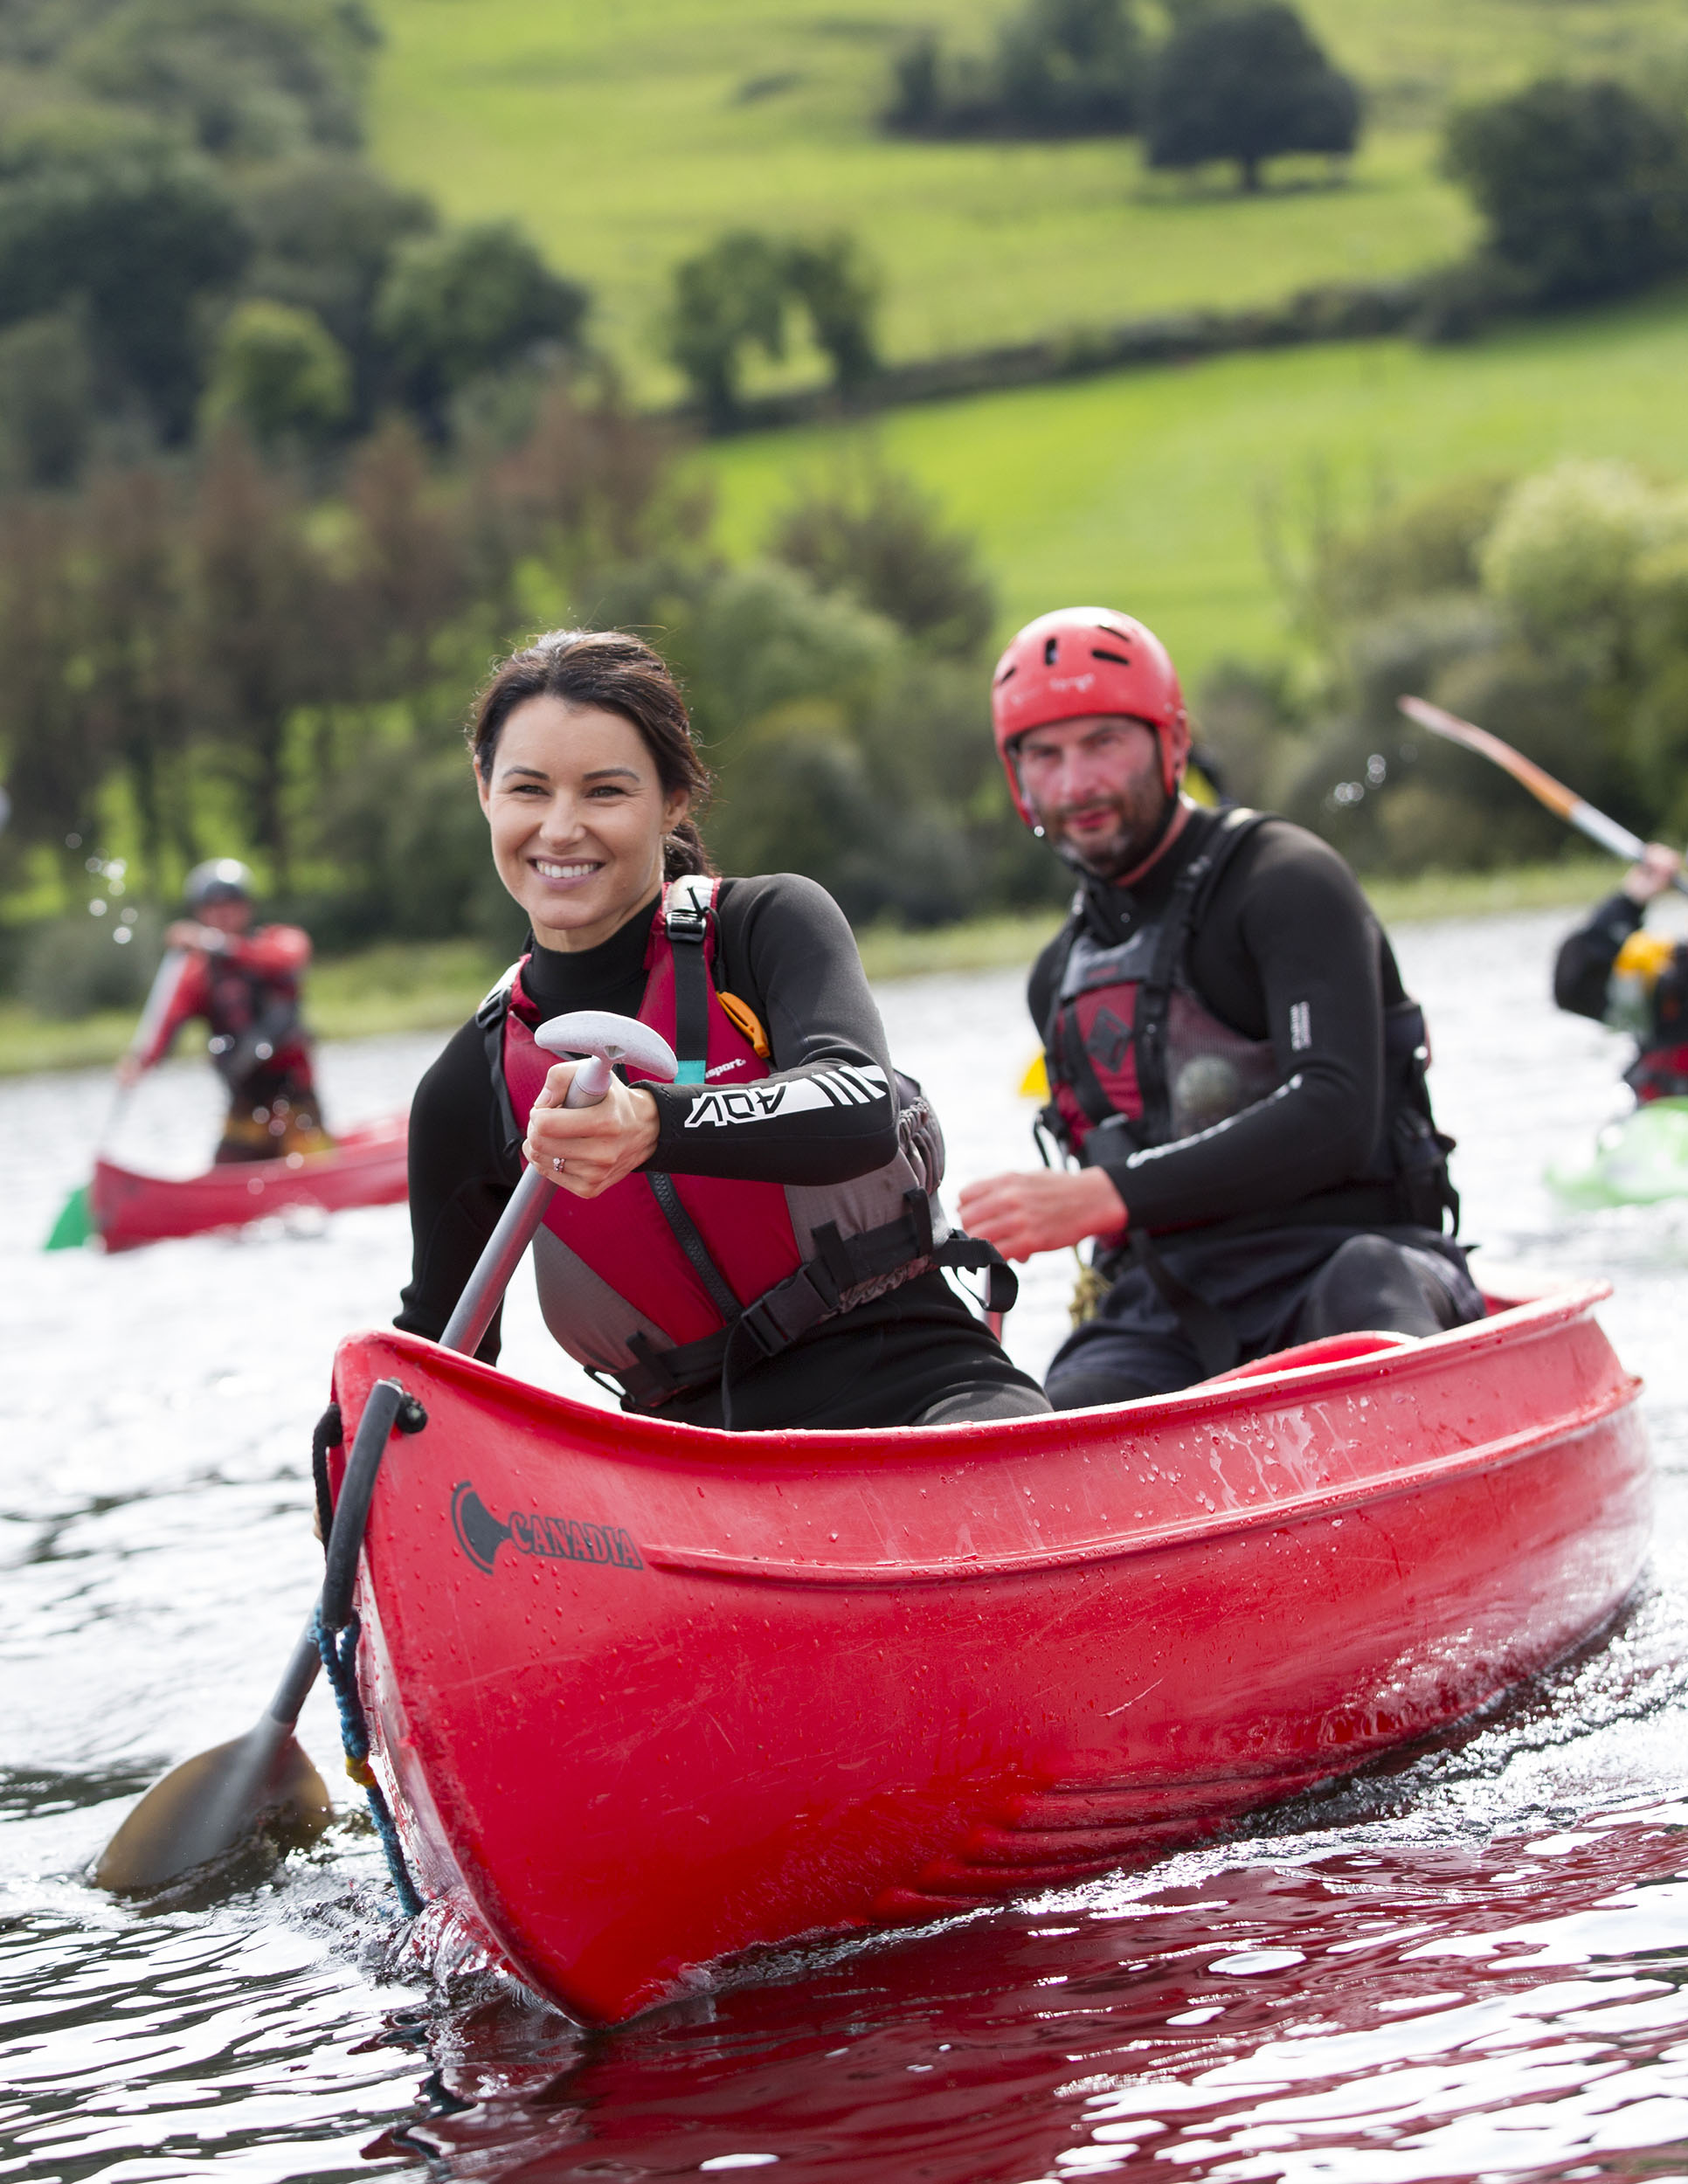 Lough Derg Blueways for Clare County Council